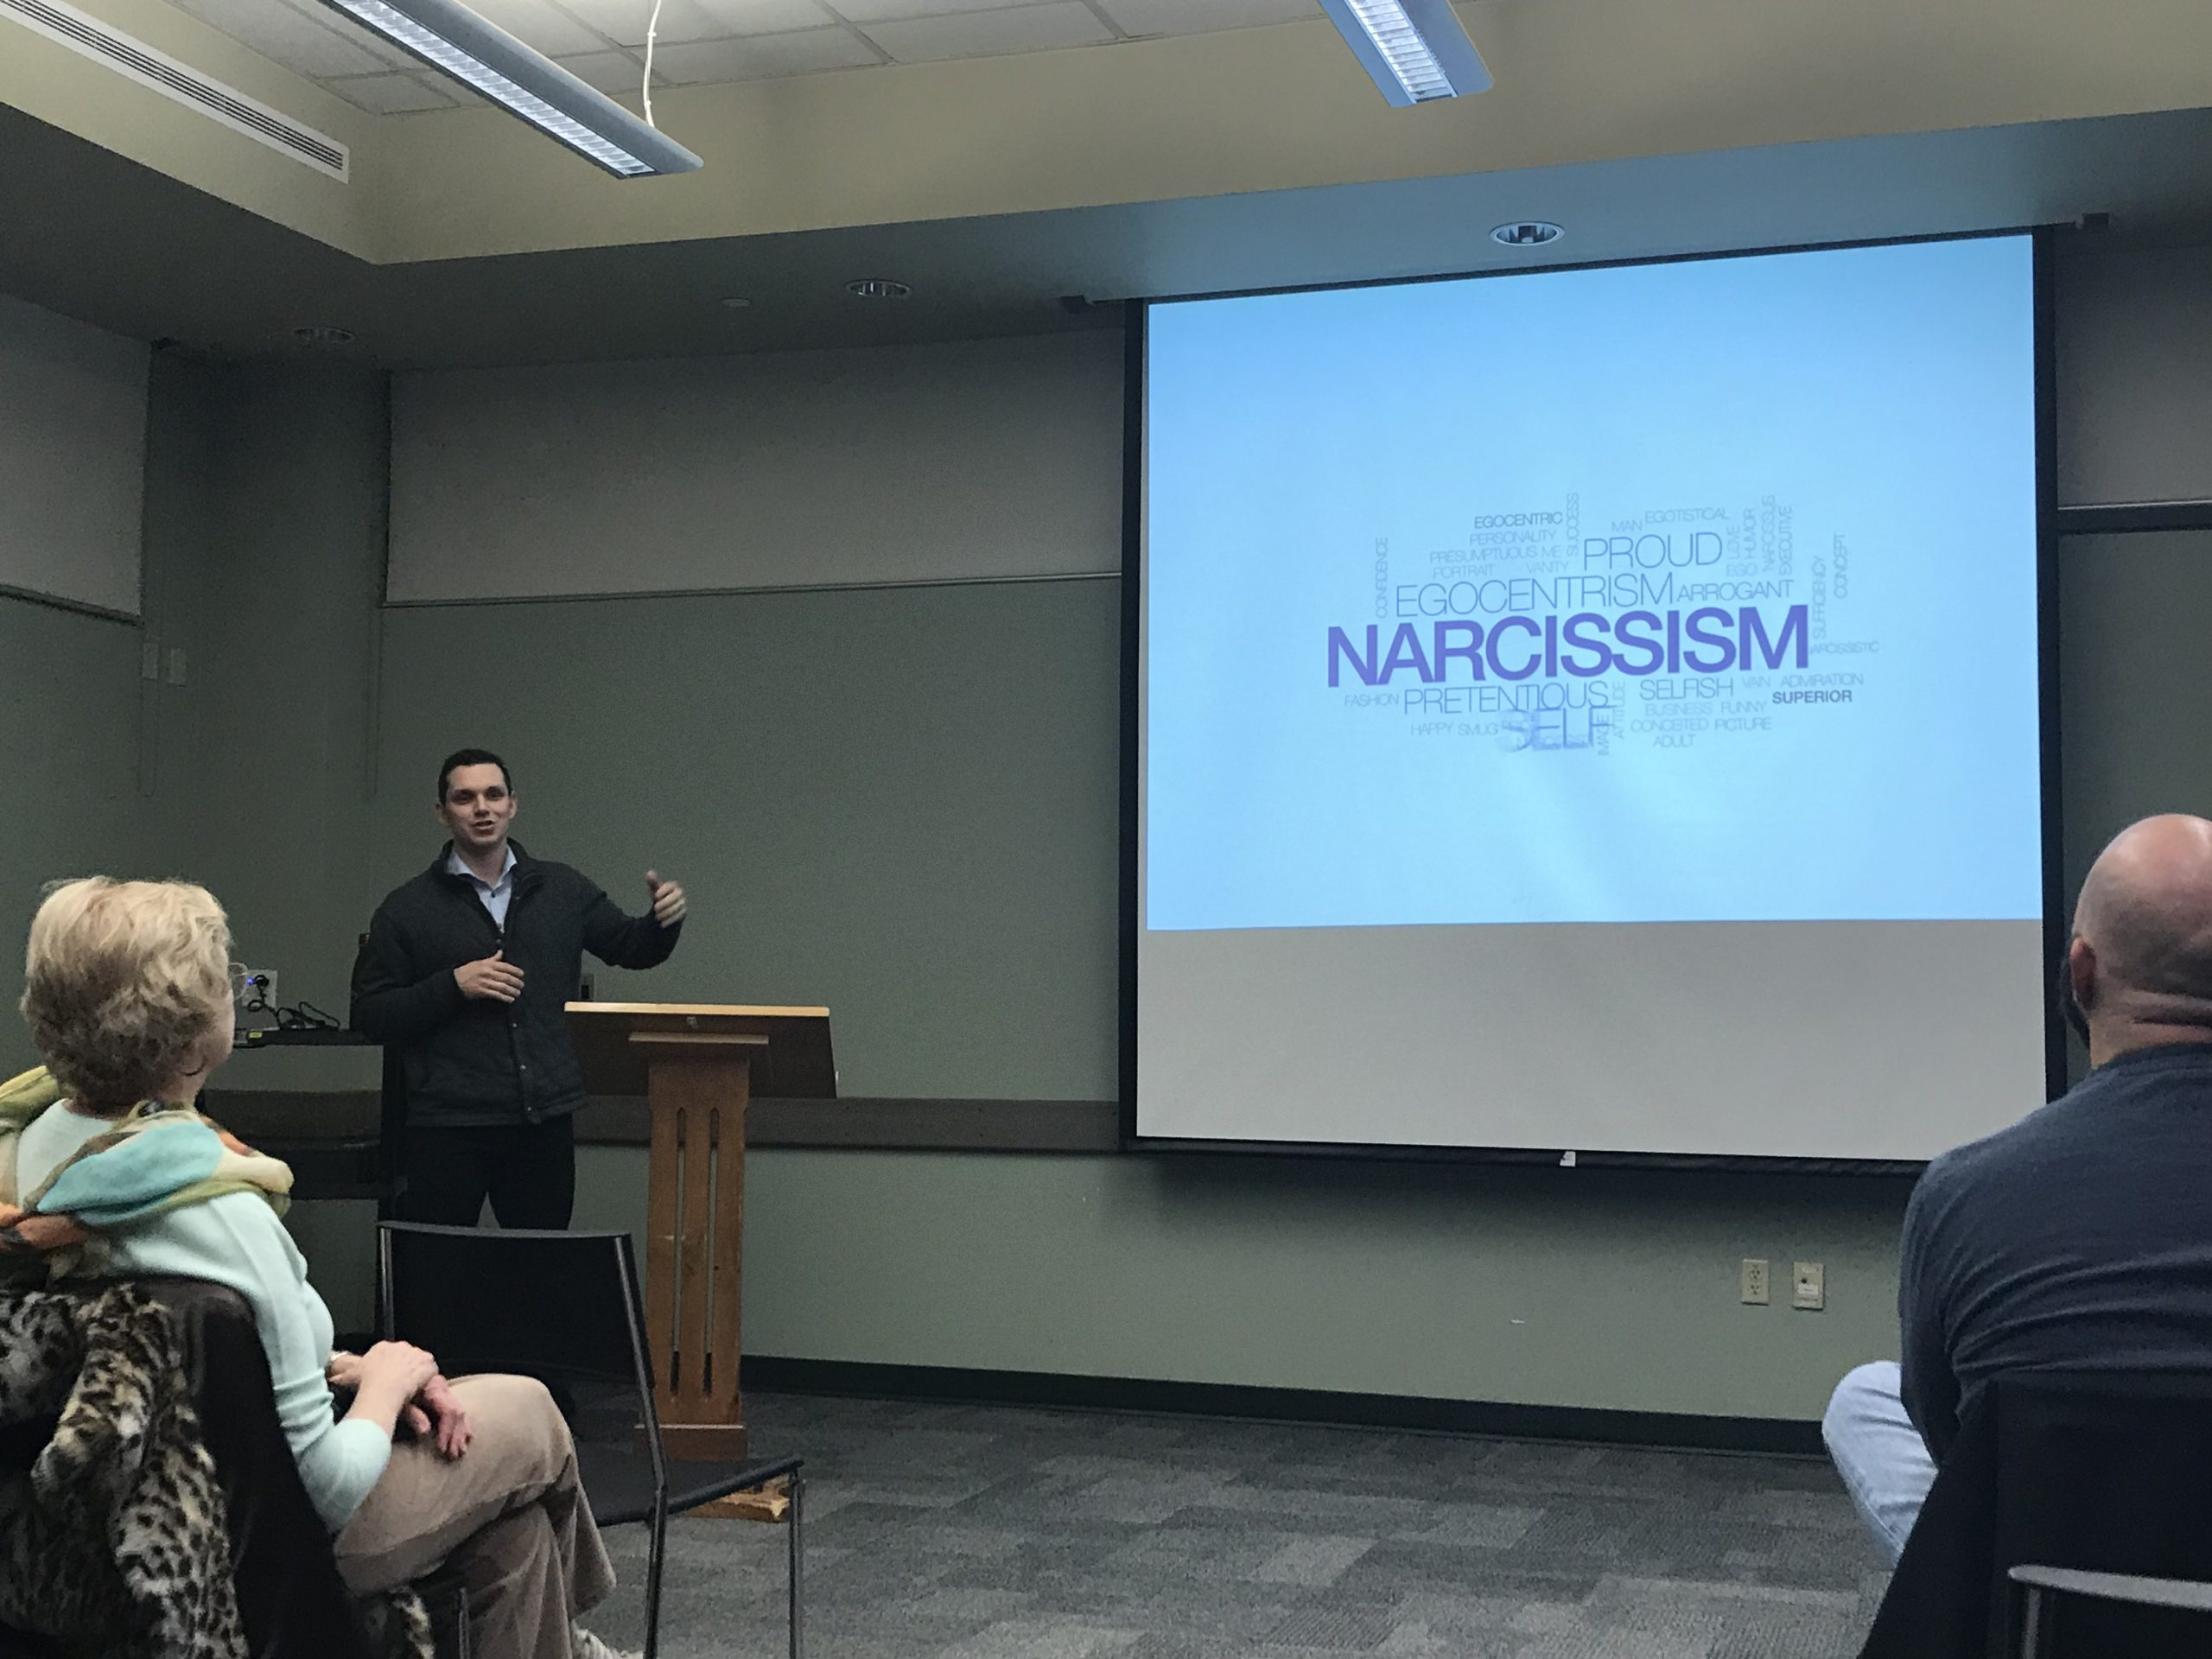 Narcissism in Workplace